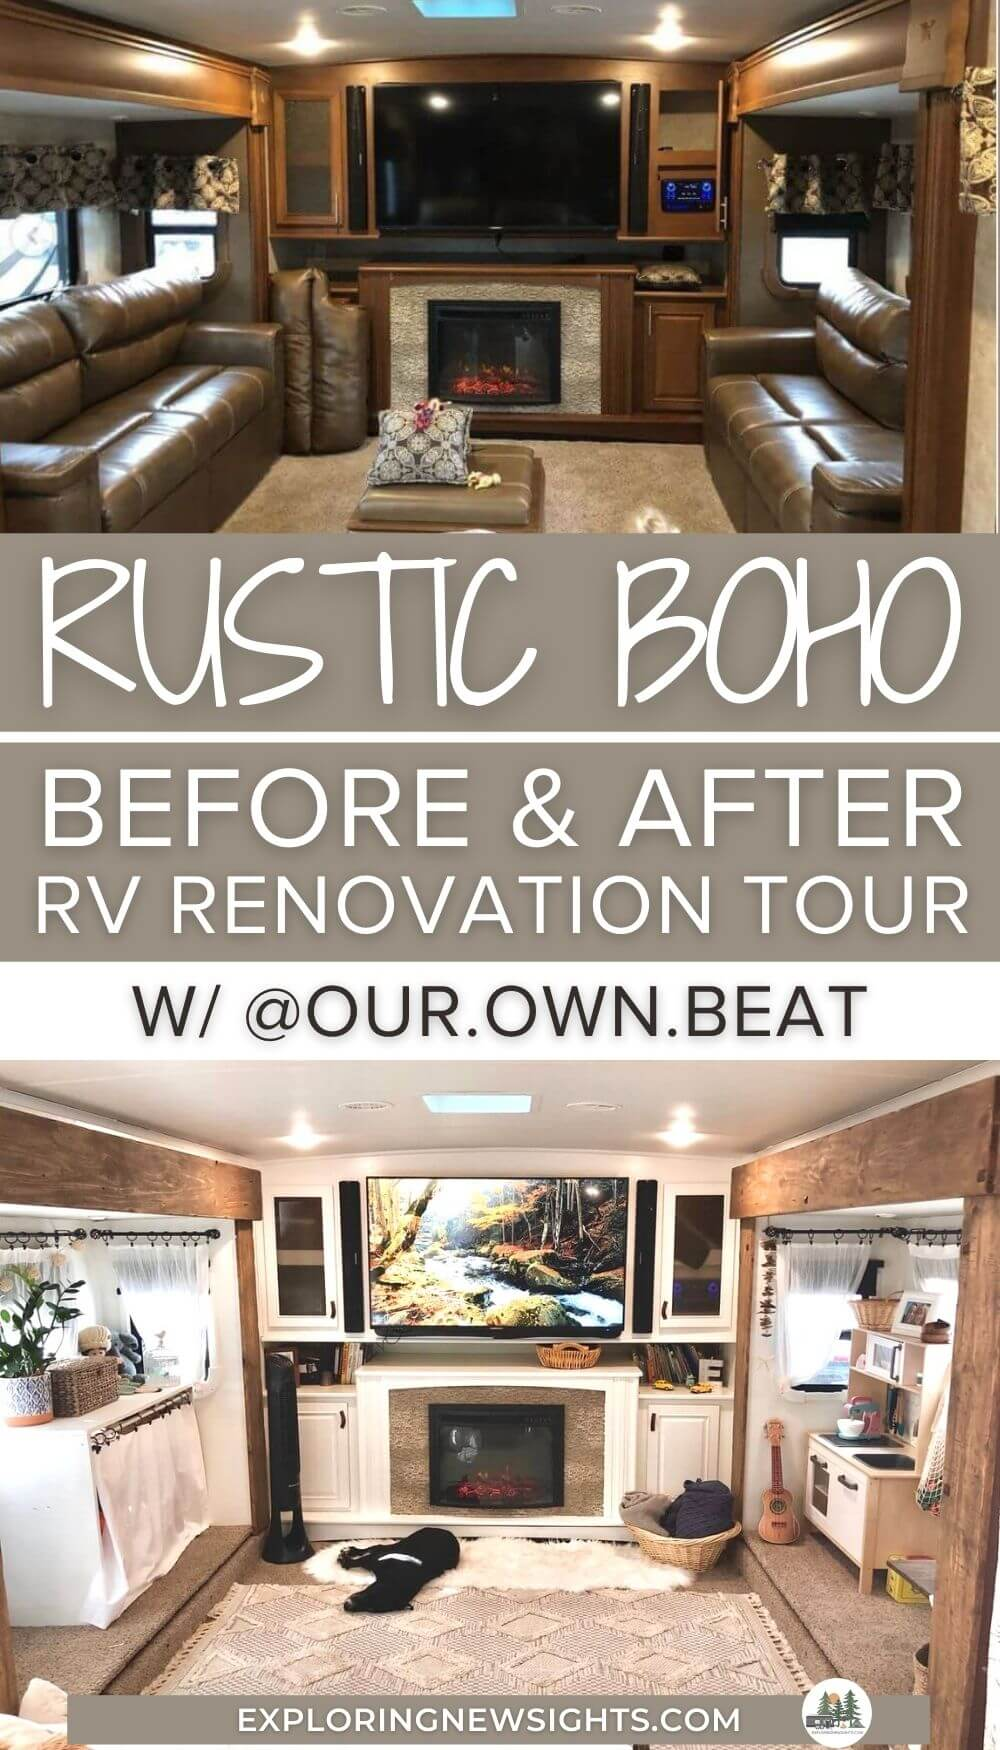 rustic bohemian RV renovation tour (1)